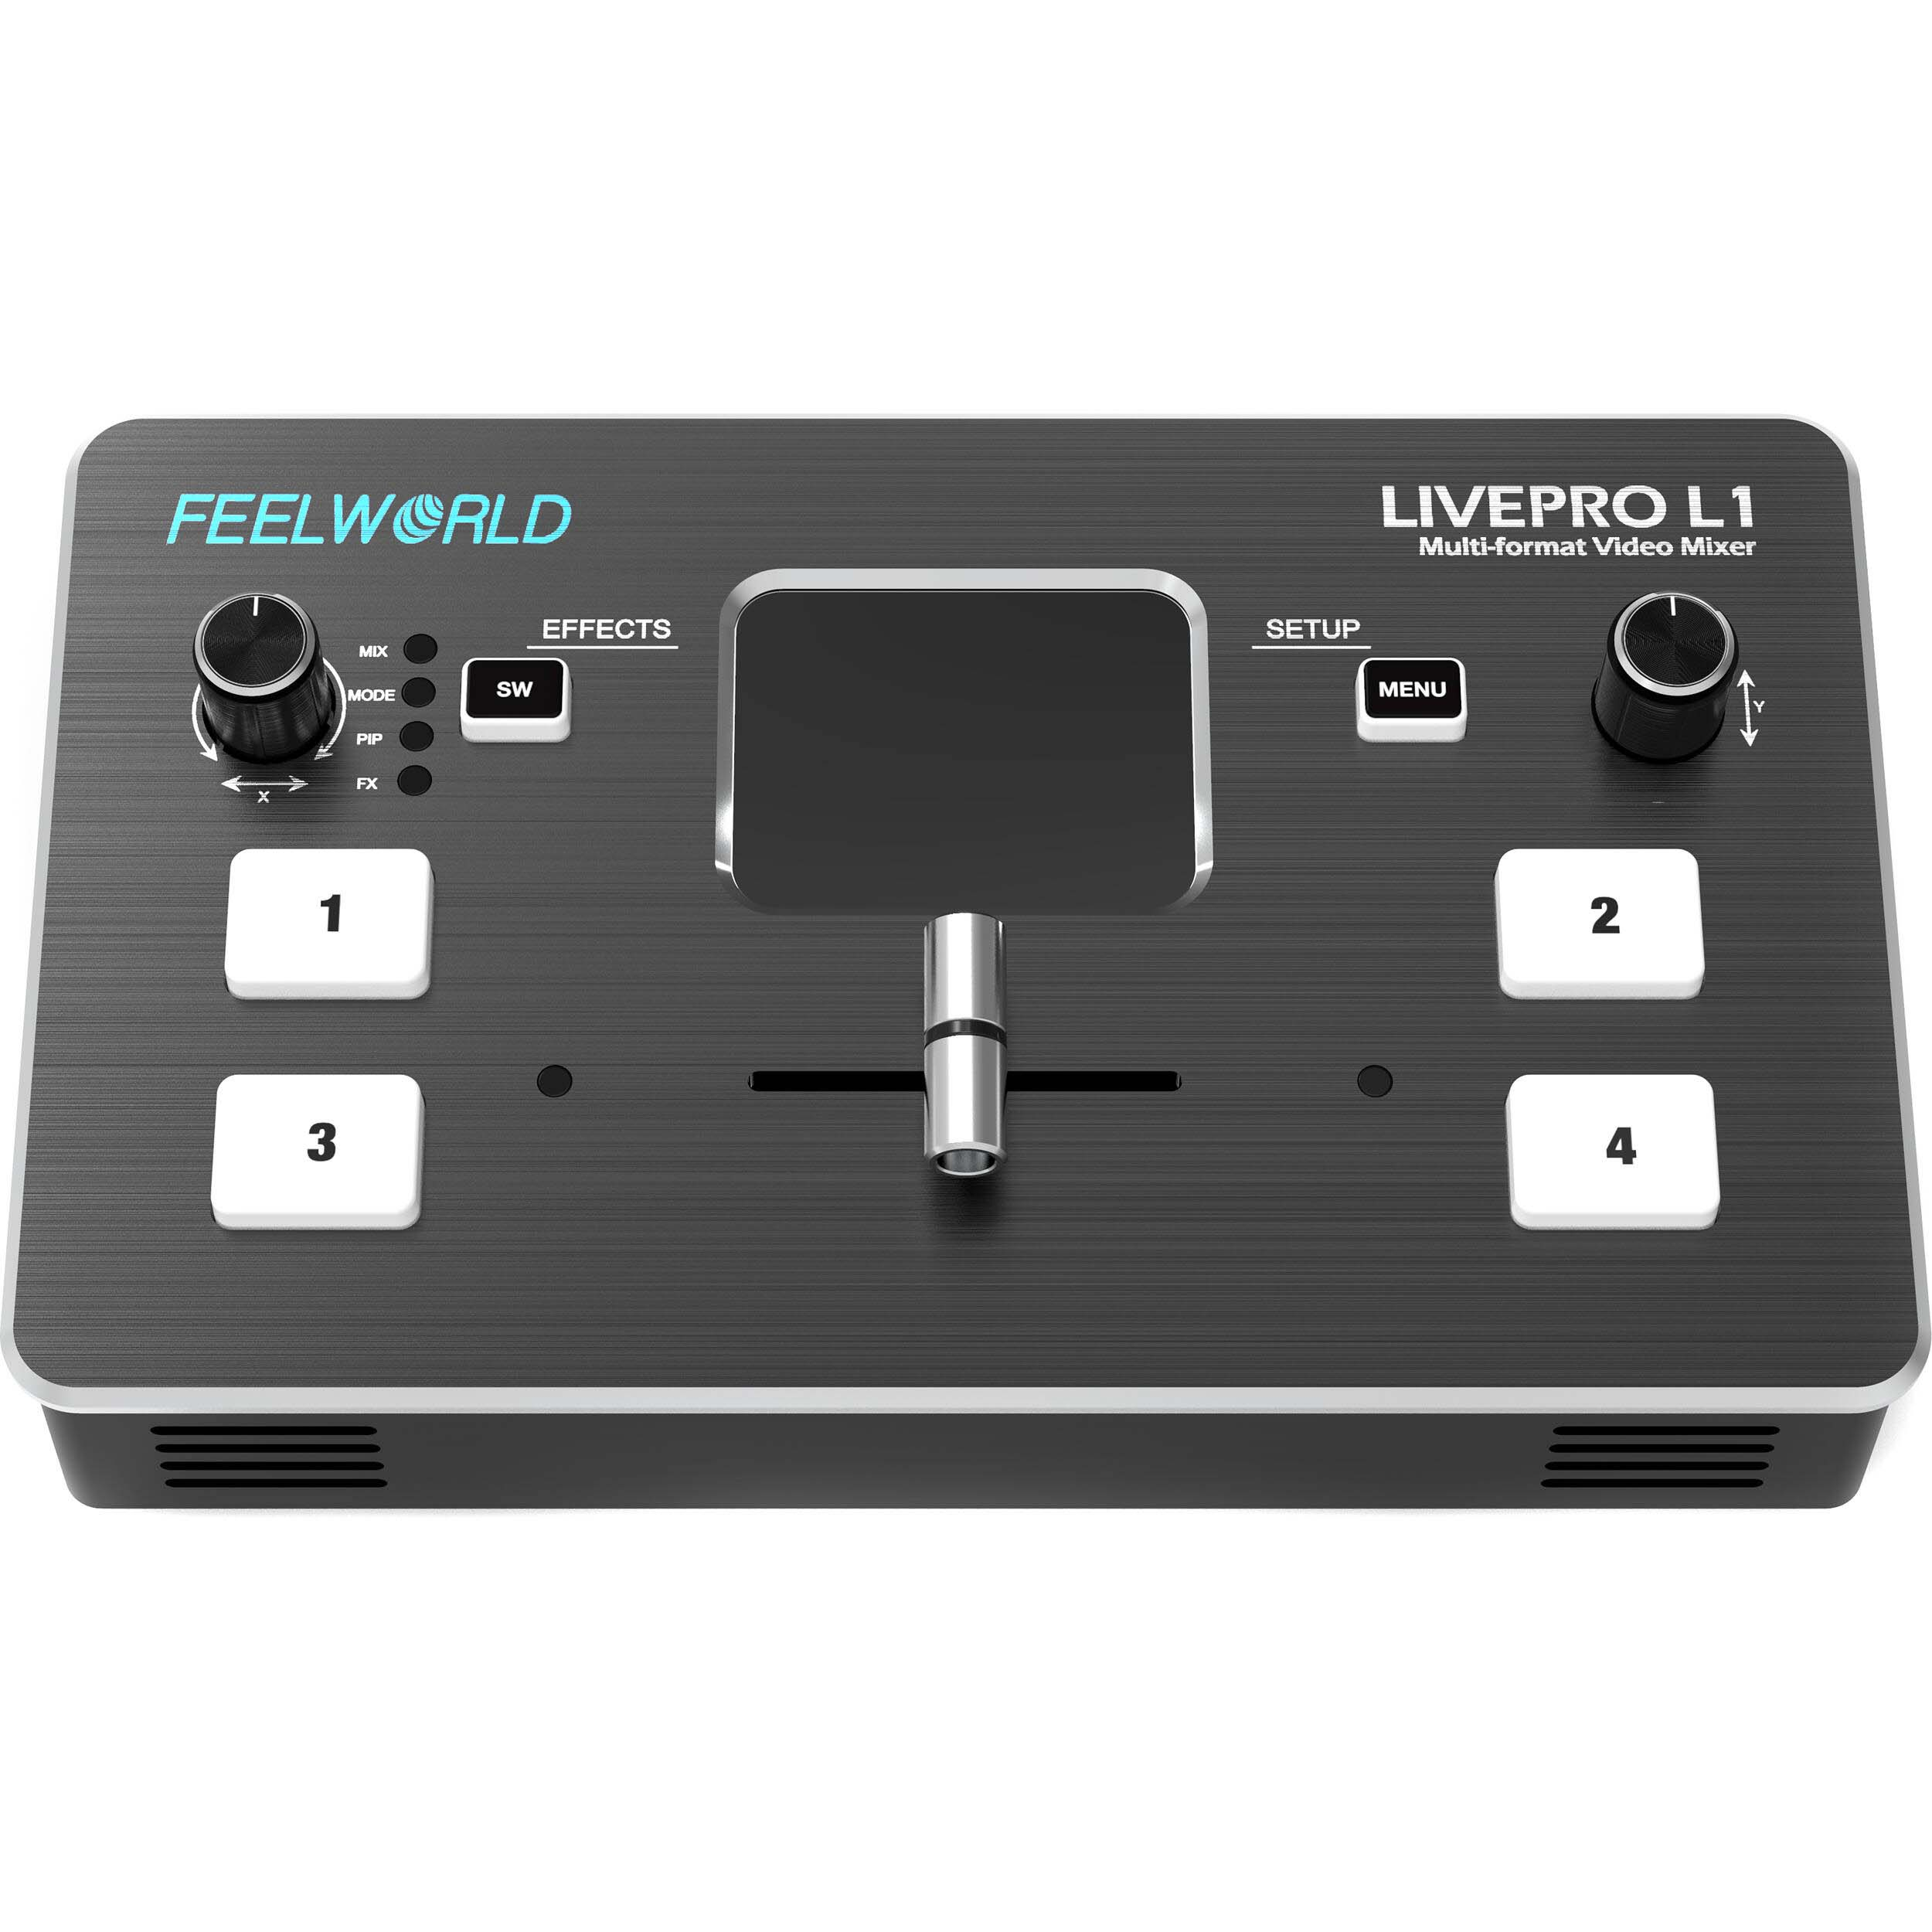 MESA FEELWORLD LIVEPRO L1 MULTI-FORMAT VIDEO MIXER